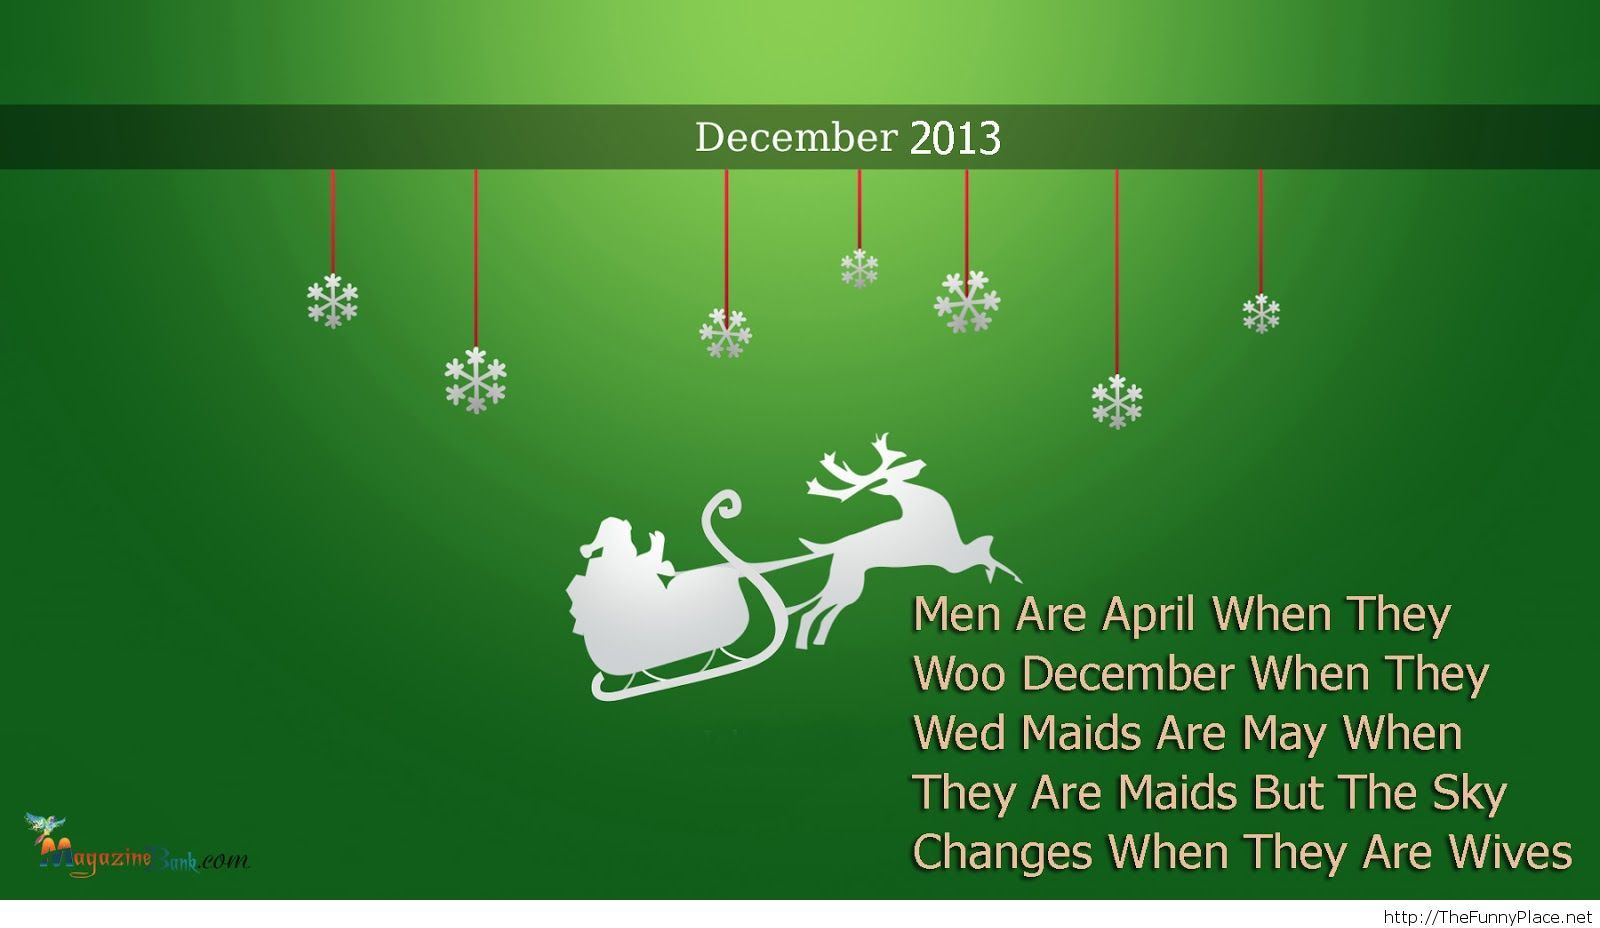 December 2013 new funny quote